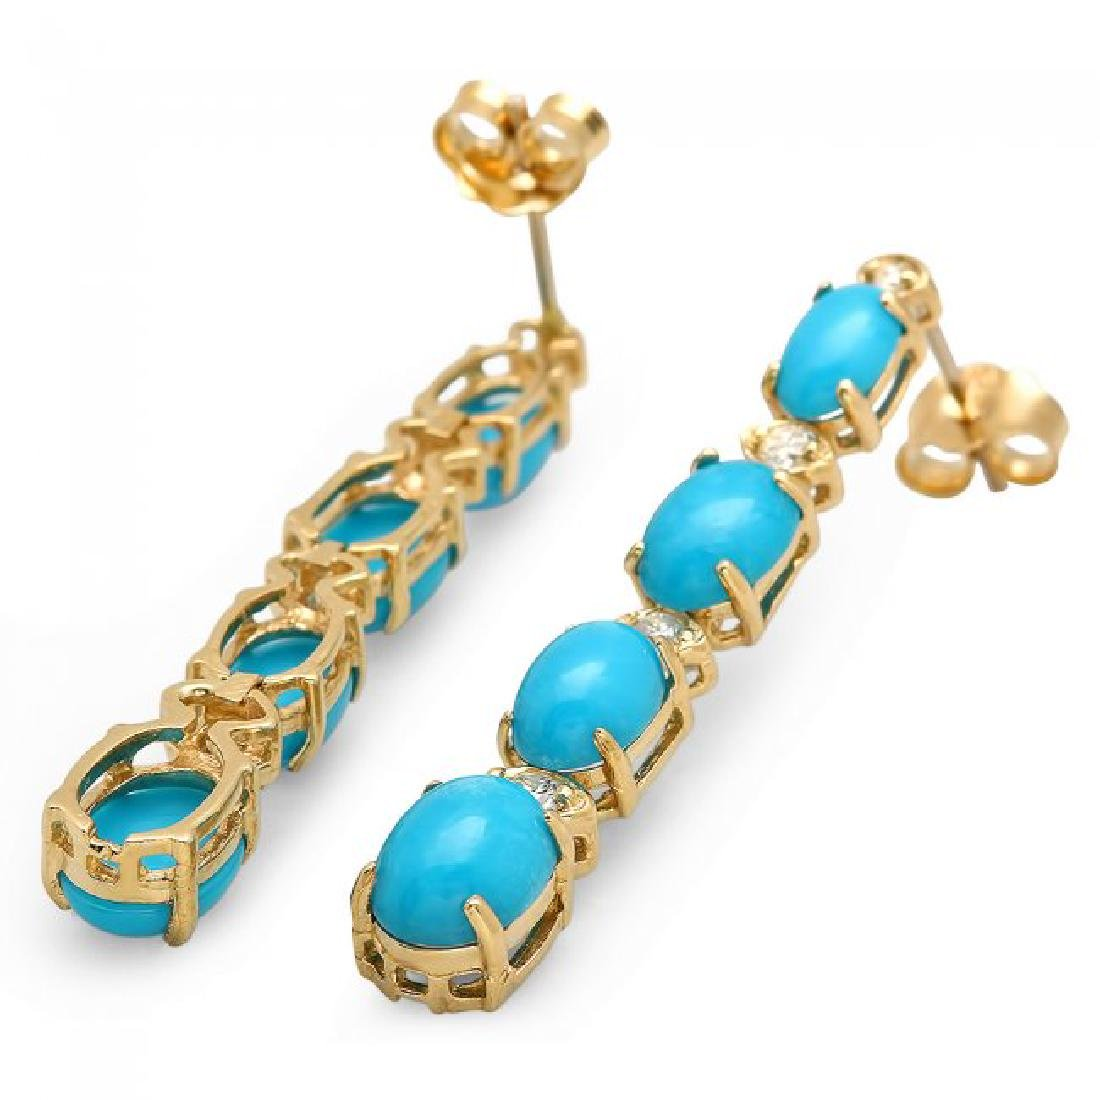 14k Gold 5.50ct Turquoise 0.35ct Diamond Earrings - 2